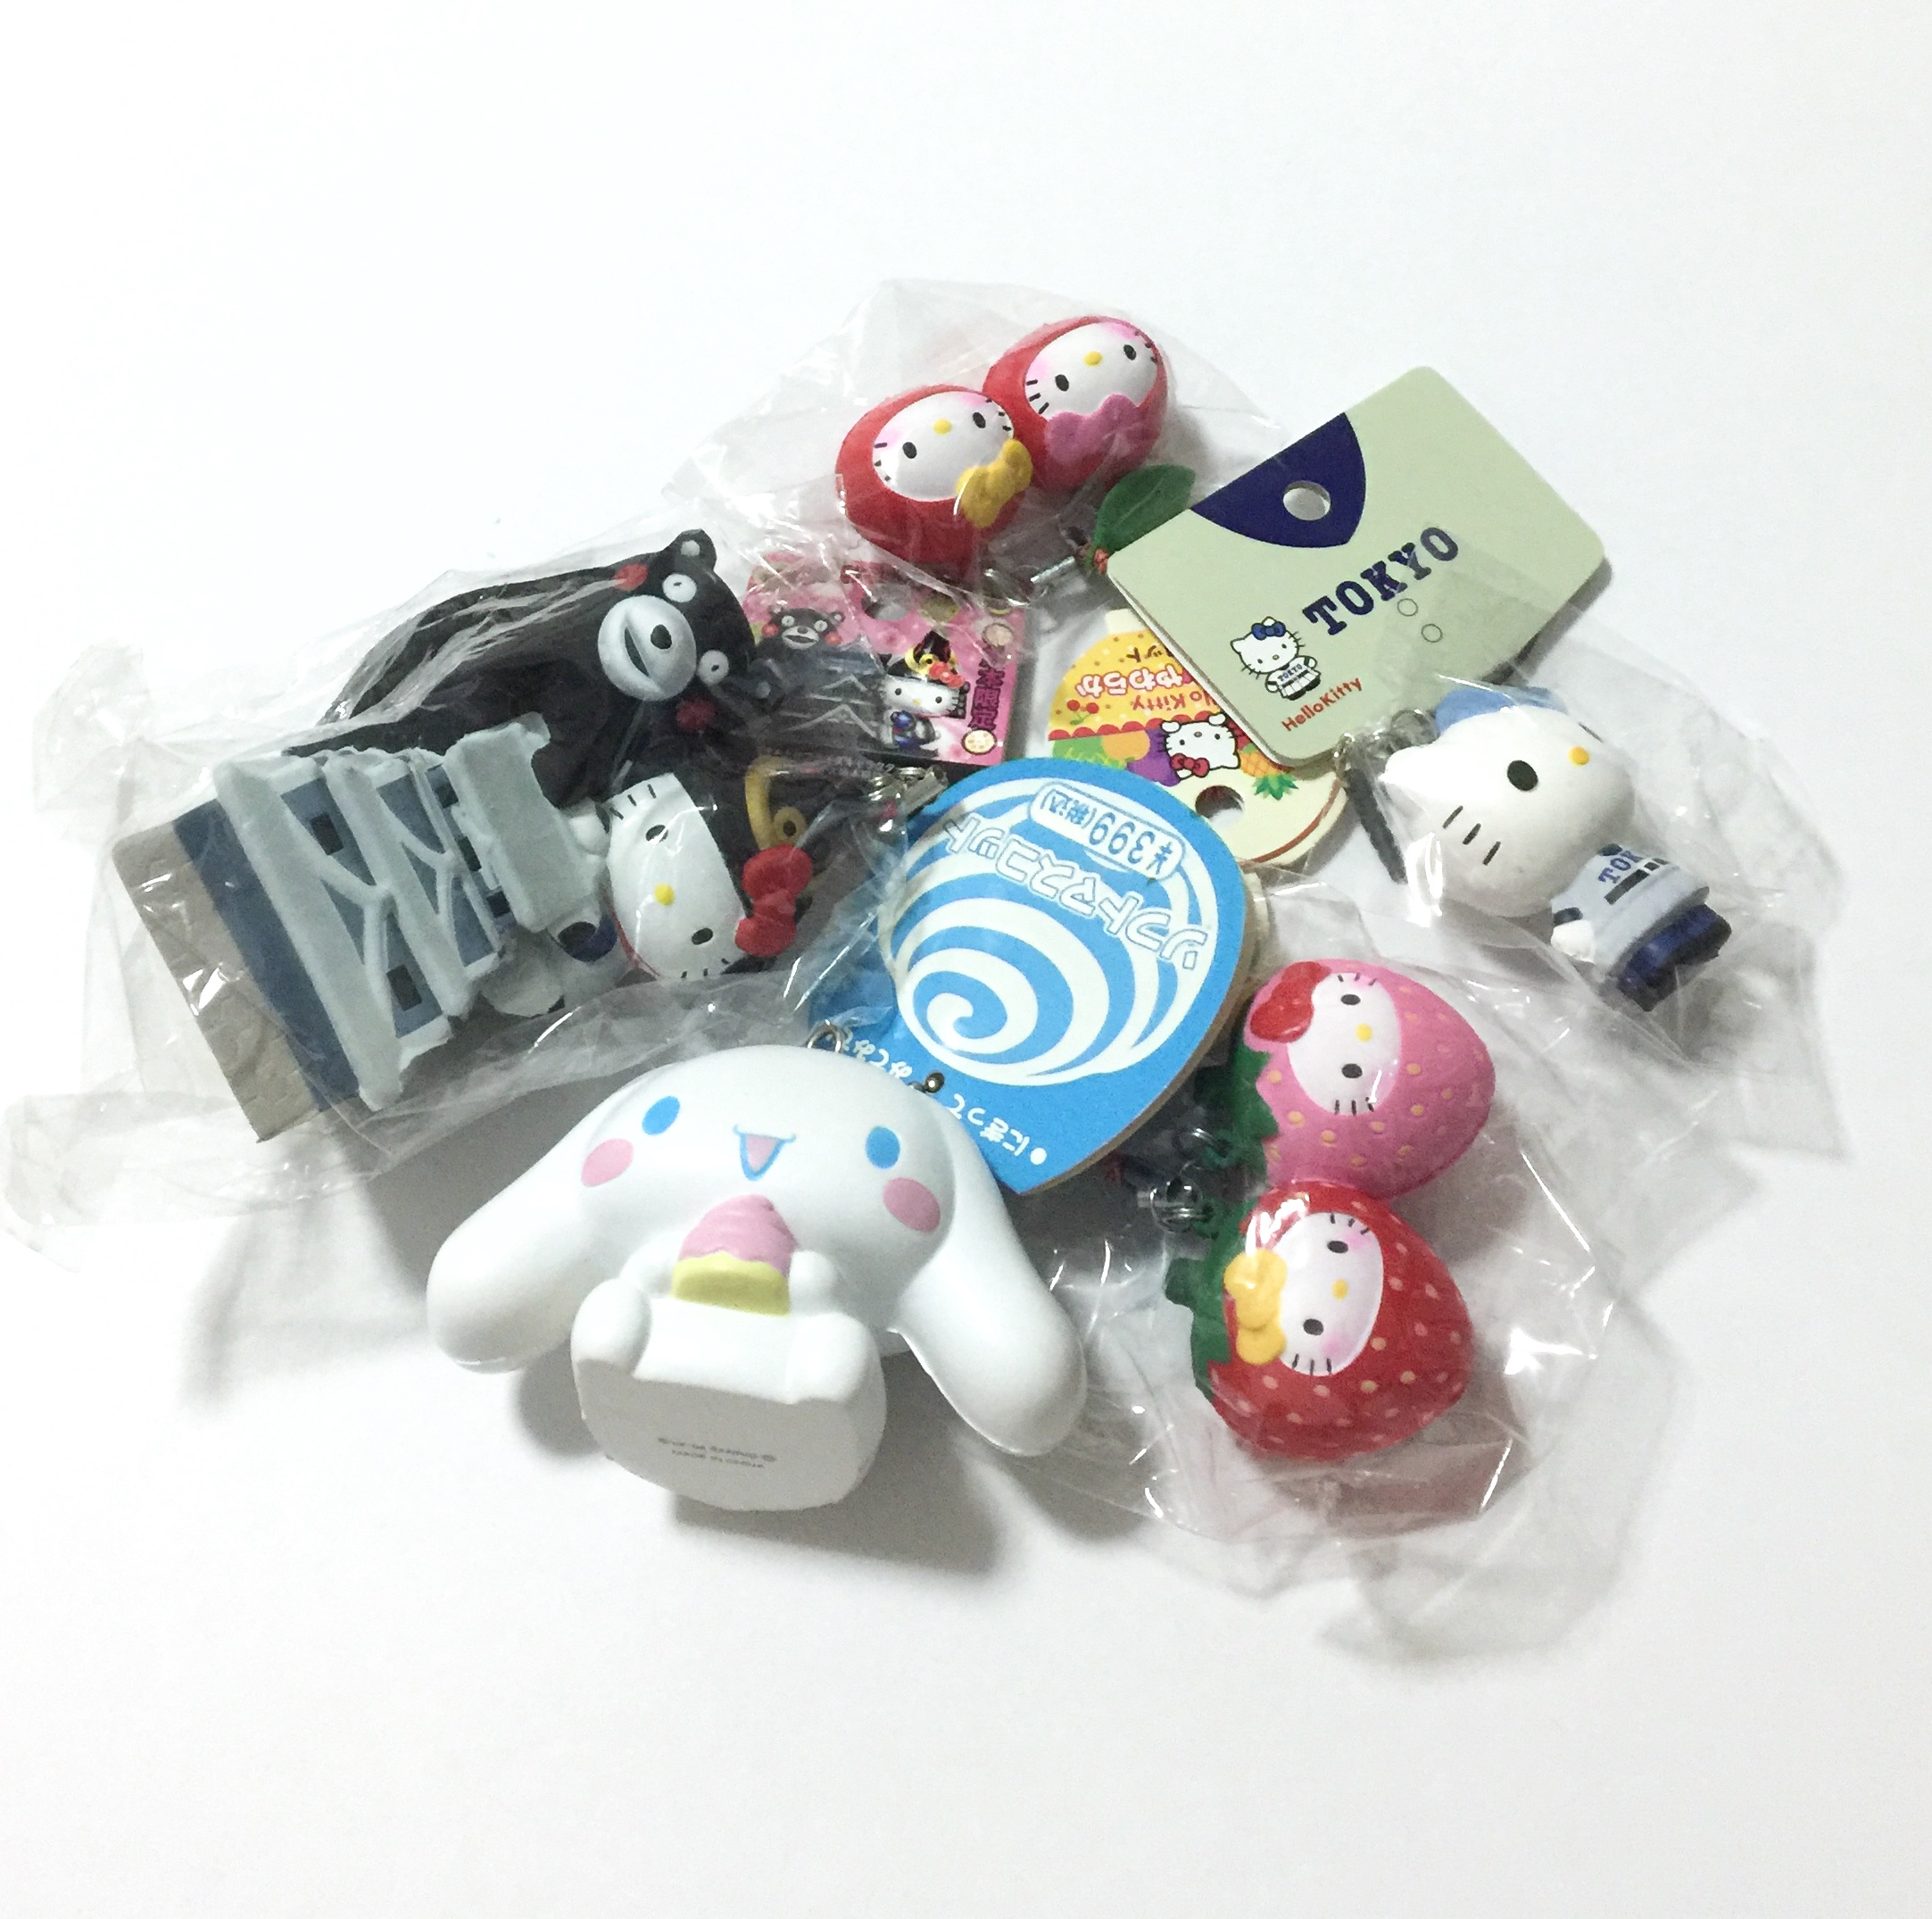 Squishy Collection Hello Kitty : Hello Kitty Squishy Bundle ? simpleeerandom ? Online Store Powered by Storenvy